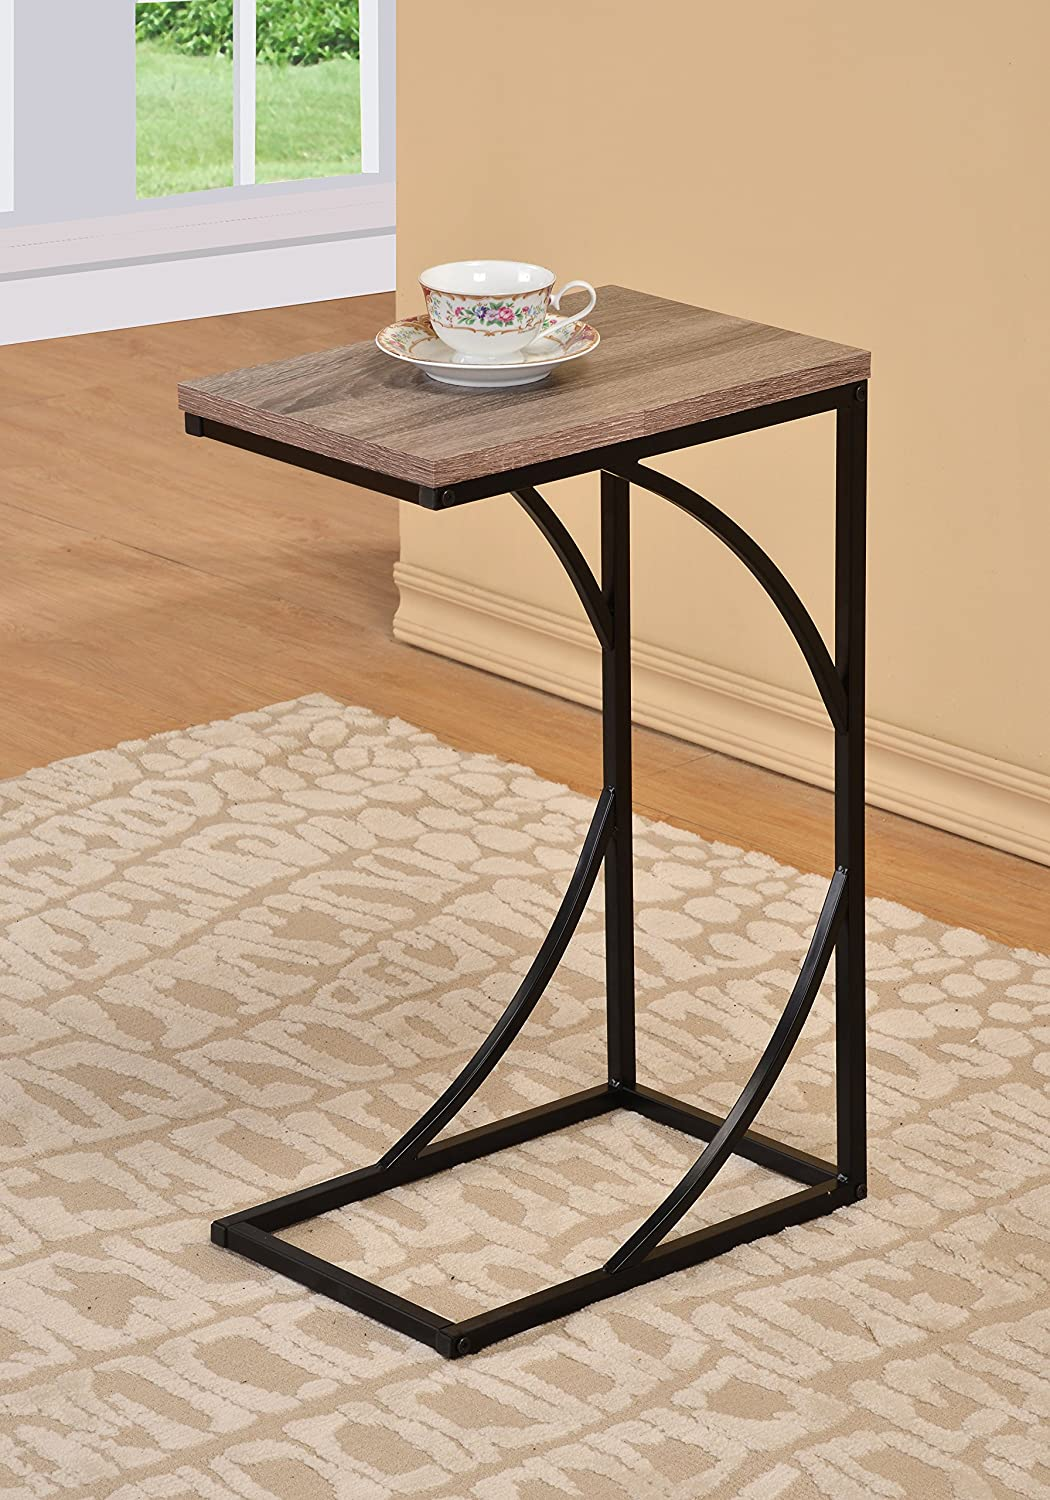 Reclaimed Wood Look Finish Black Frame Snack Side Magazine End Table eHomeProducts COMIN18JU001858